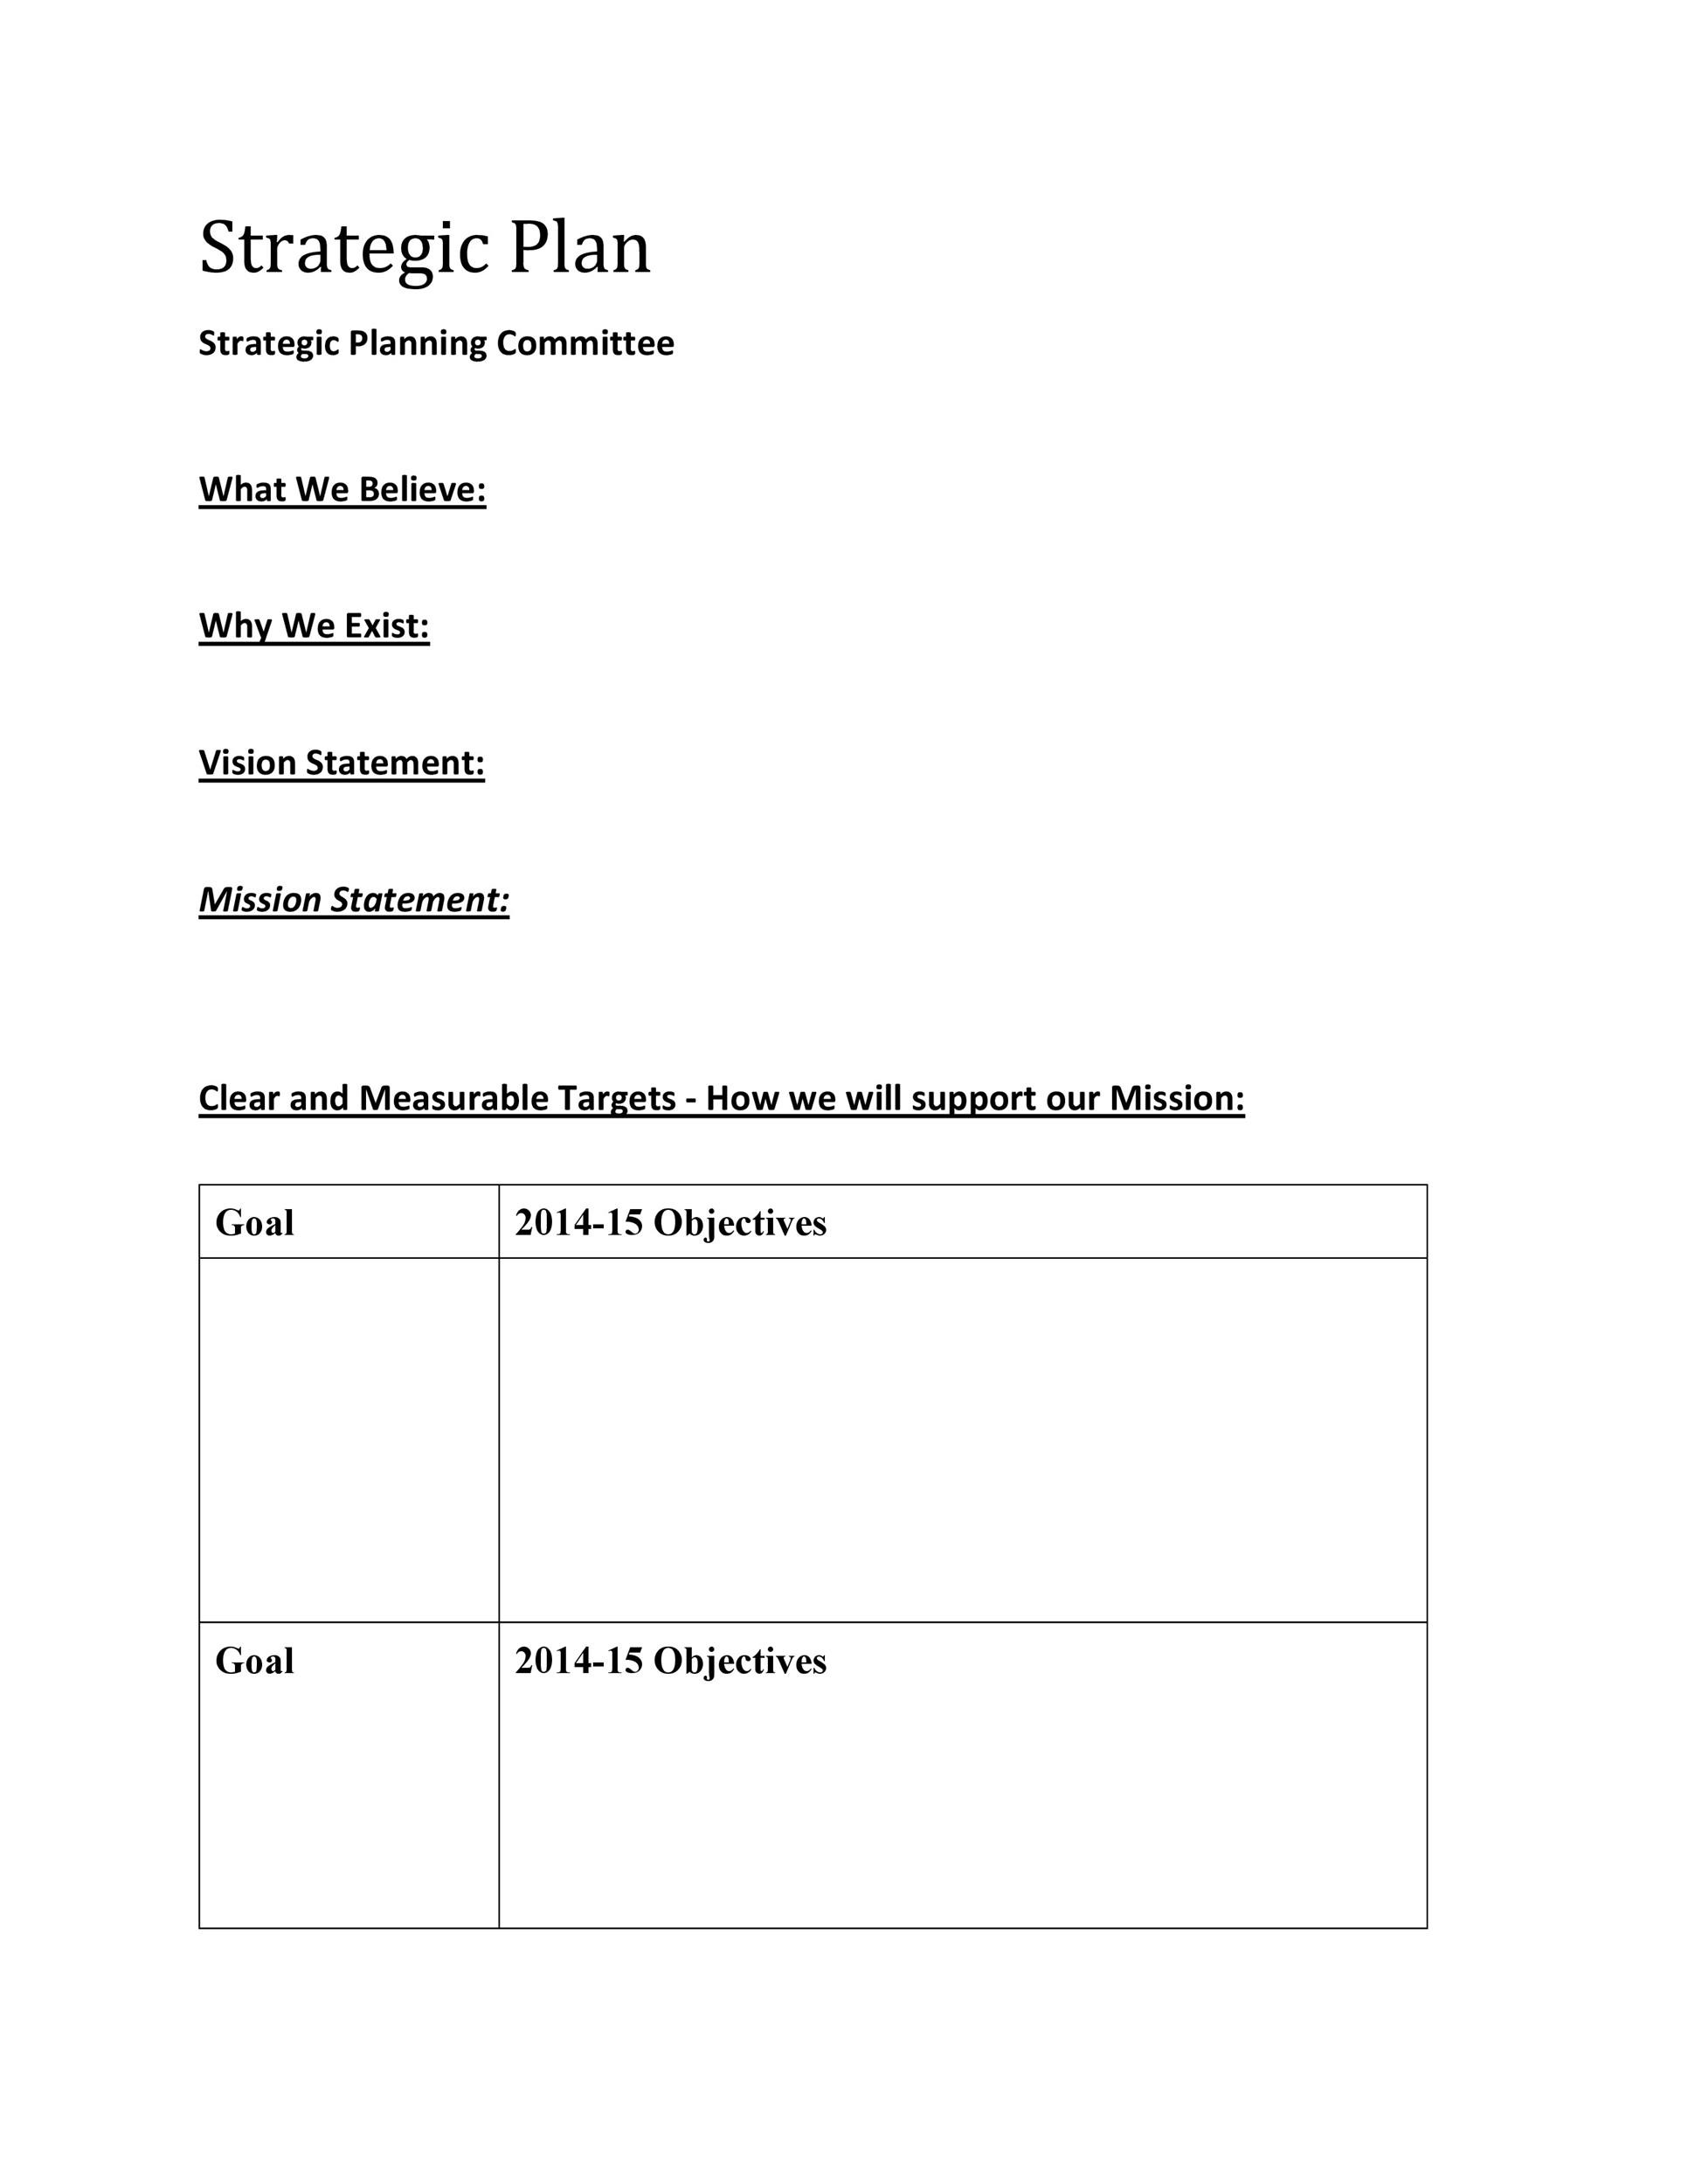 Strategic Plan Template 26